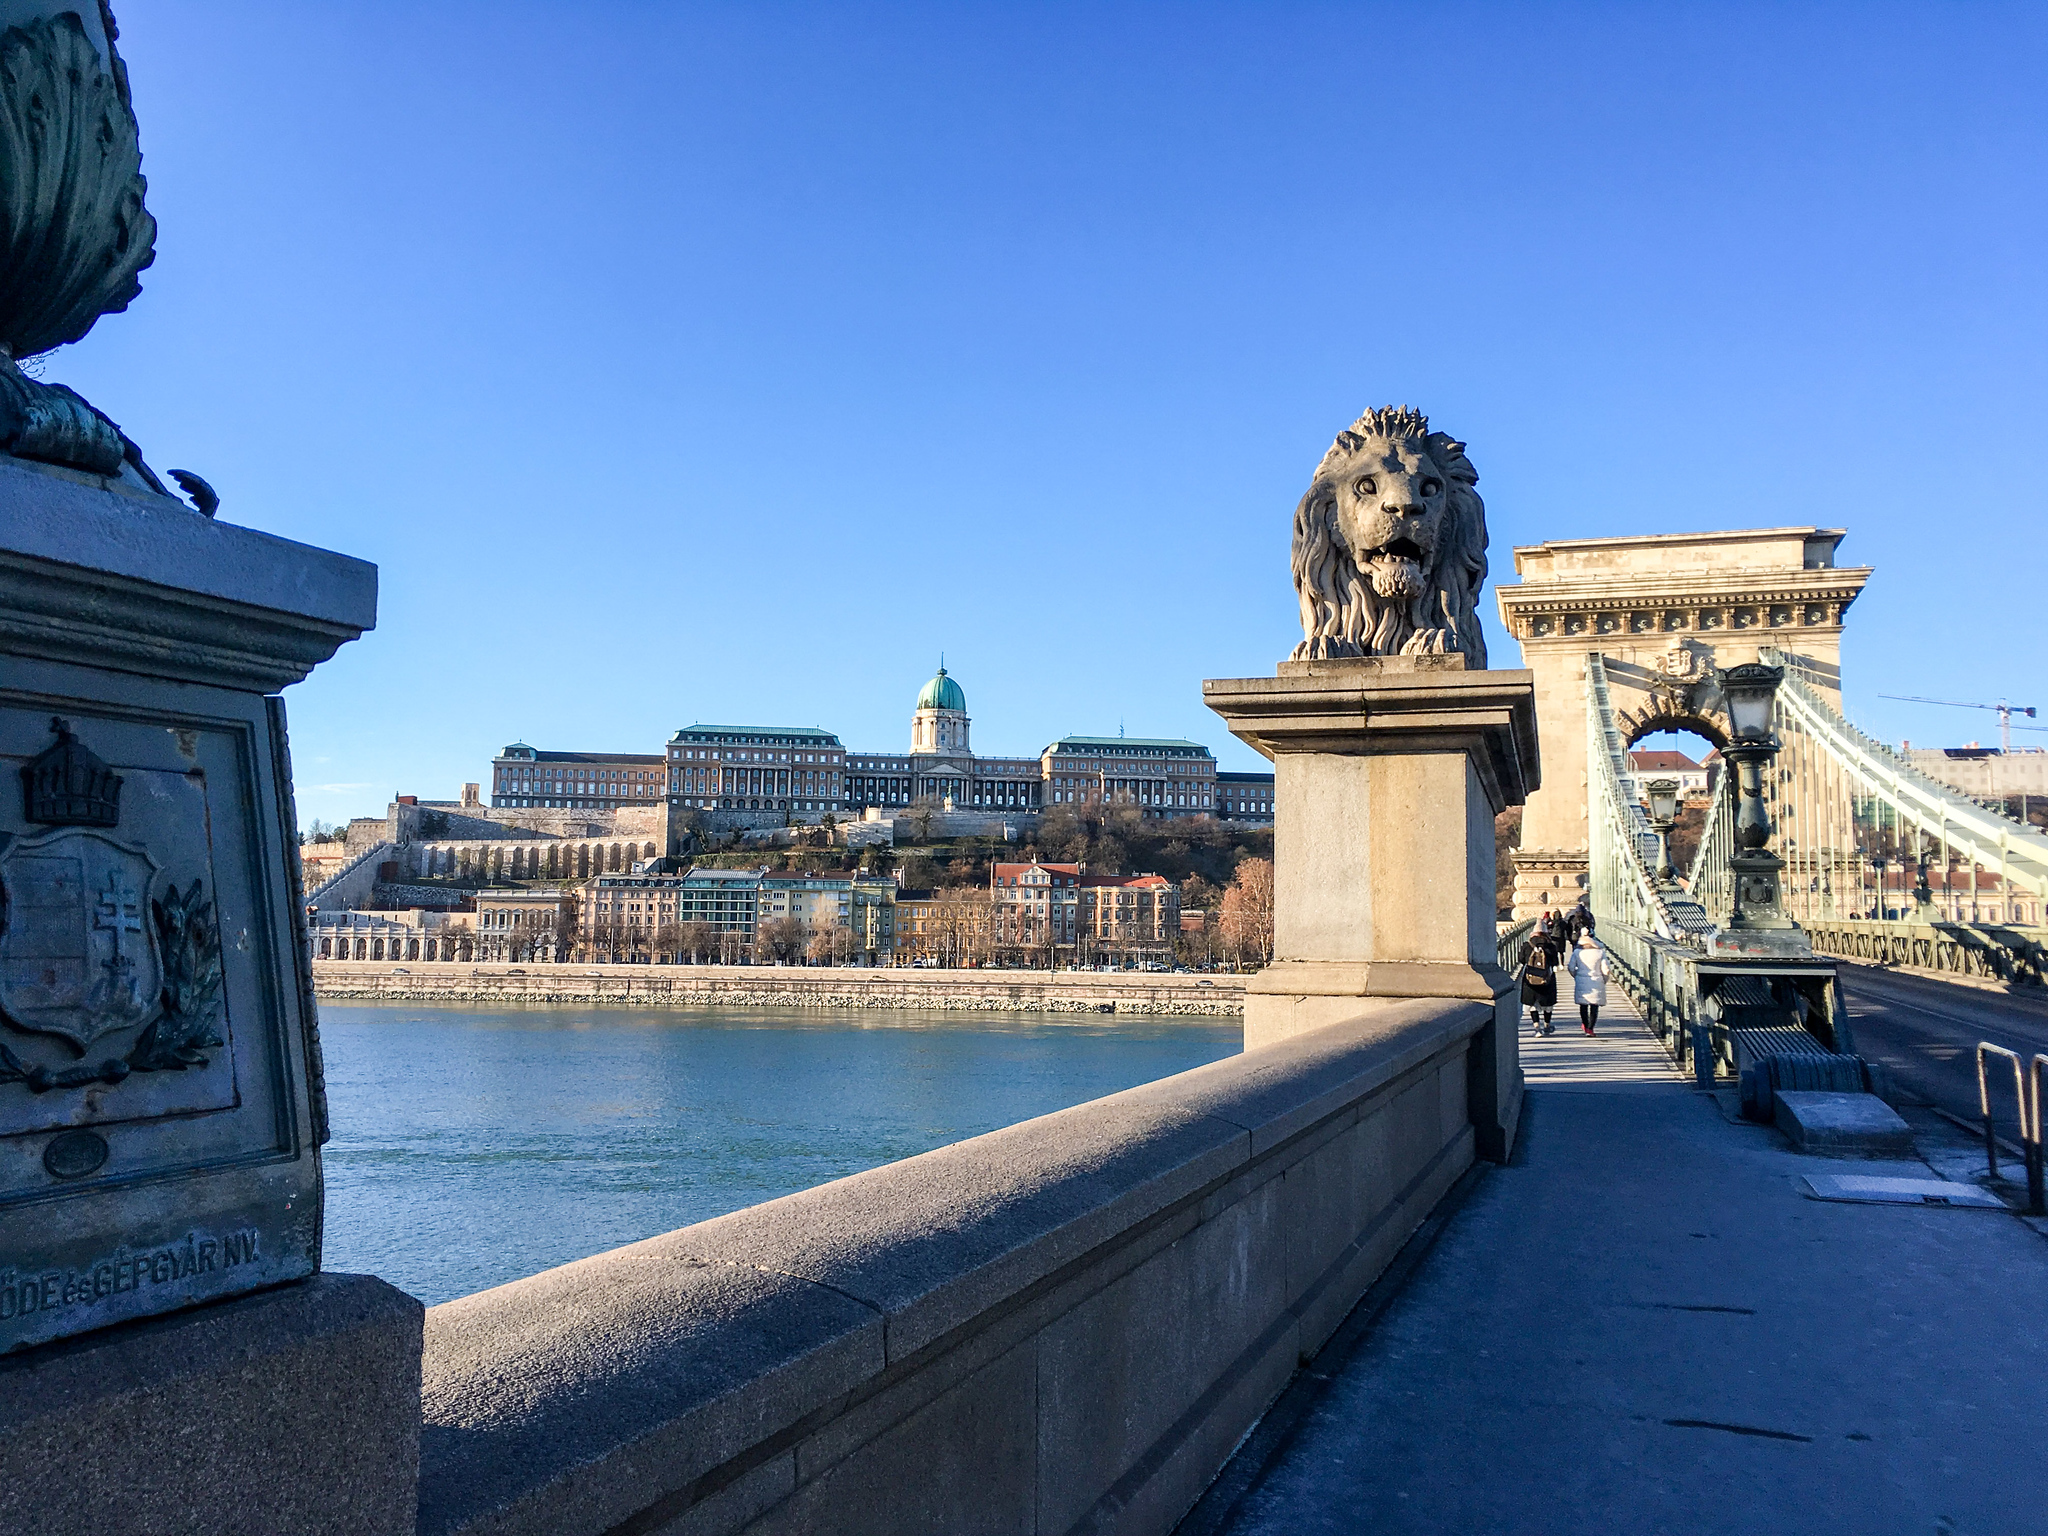 what to wear in budapest in february: something warm for crossing the bridges